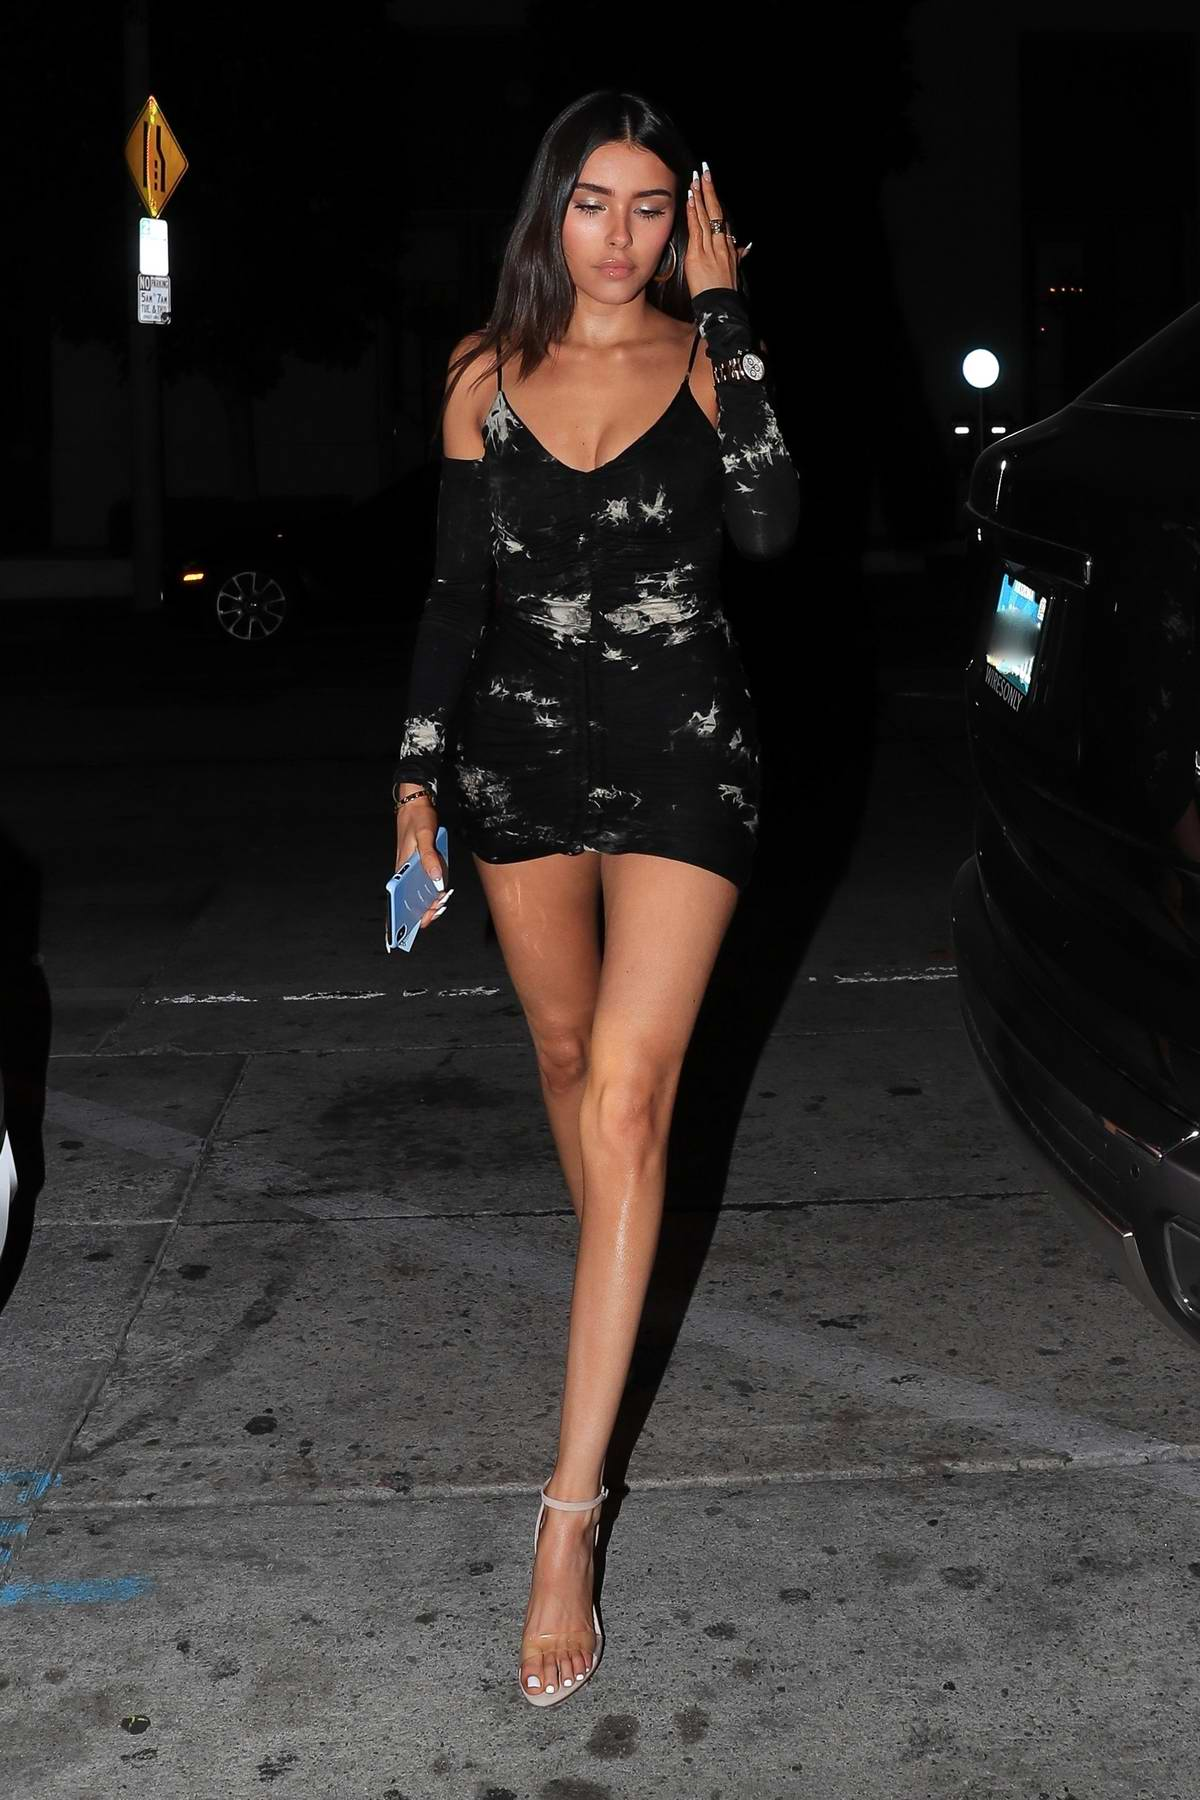 Madison Beer shows off her slender legs in black mini dress during a night out at Catch LA in West Hollywood, California